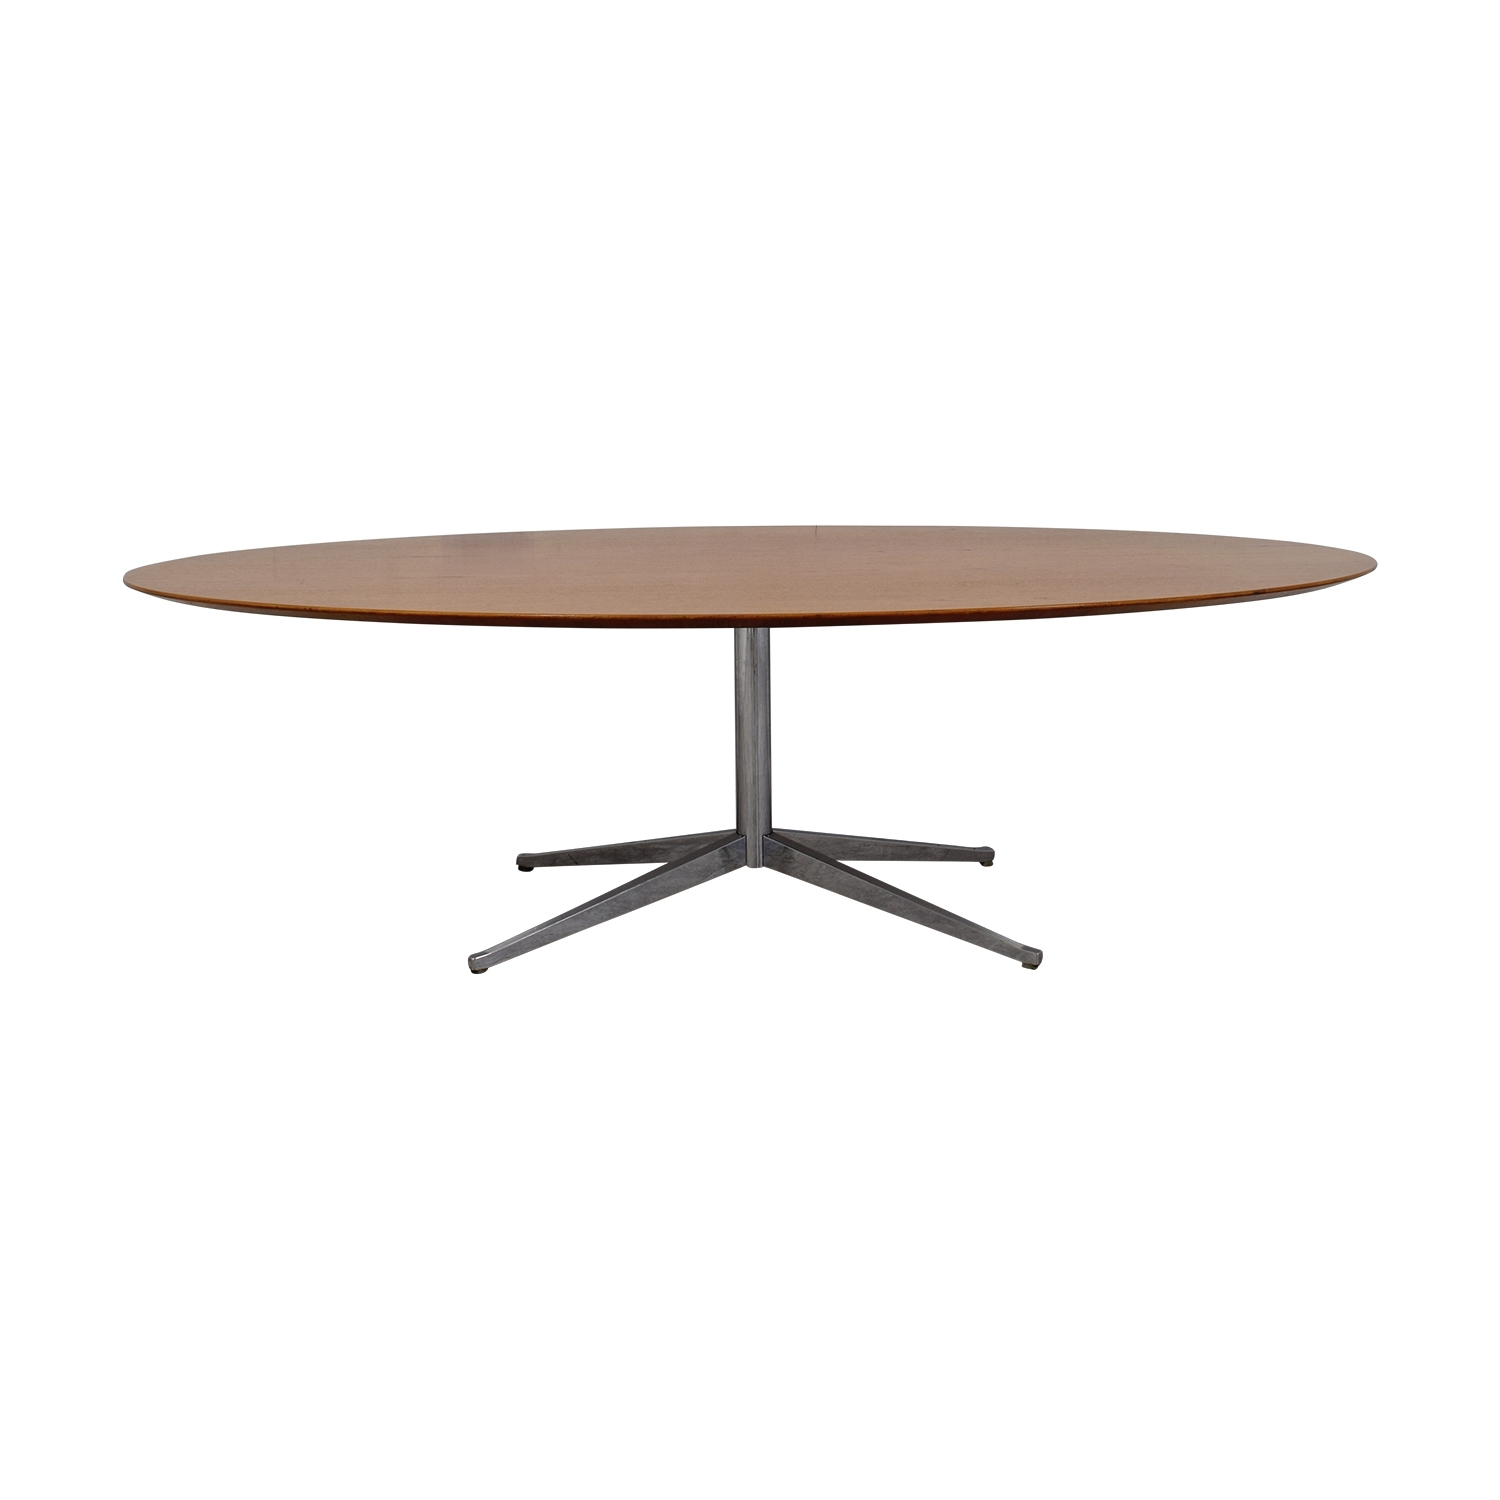 [%71% Off – Knoll Knoll Florence Oval Dining Table / Tables Inside Famous Oval Dining Tables For Sale Oval Dining Tables For Sale Intended For Well Known 71% Off – Knoll Knoll Florence Oval Dining Table / Tables Most Current Oval Dining Tables For Sale Inside 71% Off – Knoll Knoll Florence Oval Dining Table / Tables Widely Used 71% Off – Knoll Knoll Florence Oval Dining Table / Tables Within Oval Dining Tables For Sale%] (View 15 of 25)